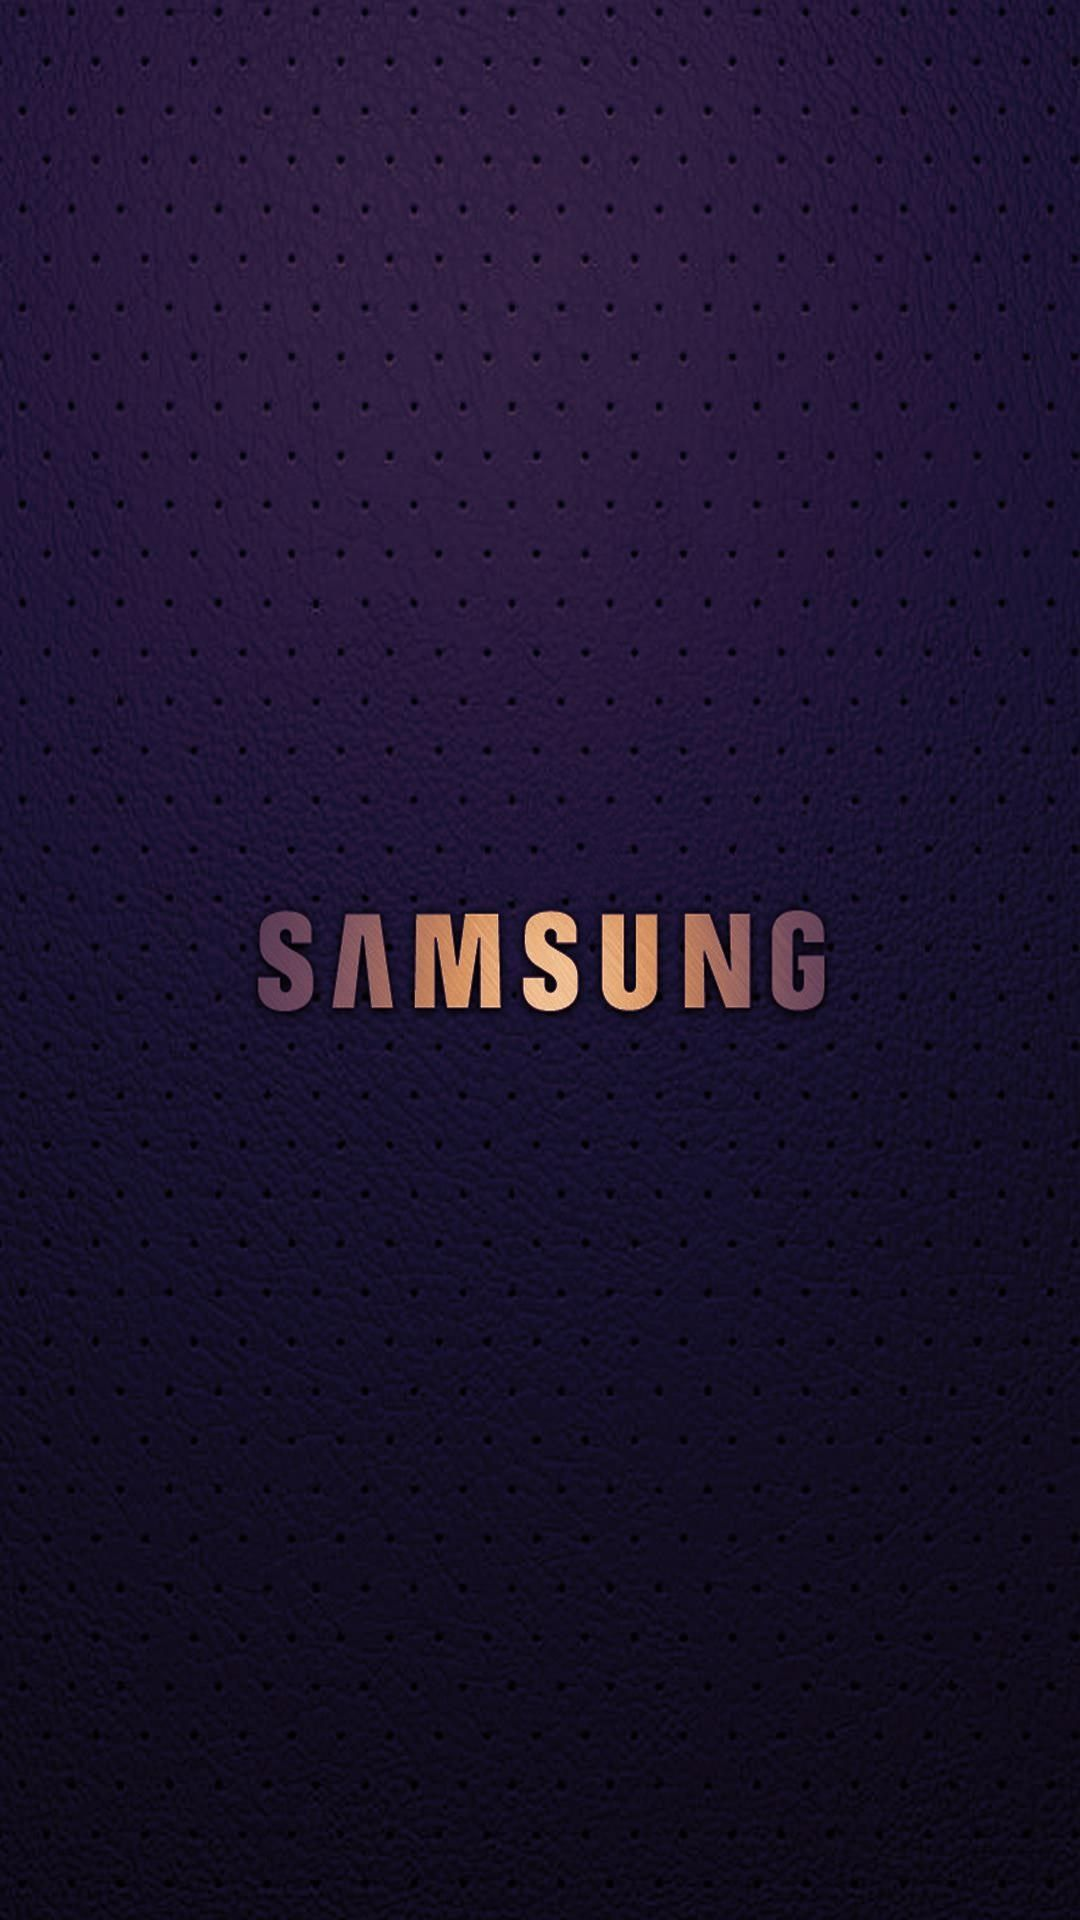 Samsung Phone Wallpapers Top Free Samsung Phone Backgrounds Wallpaperaccess